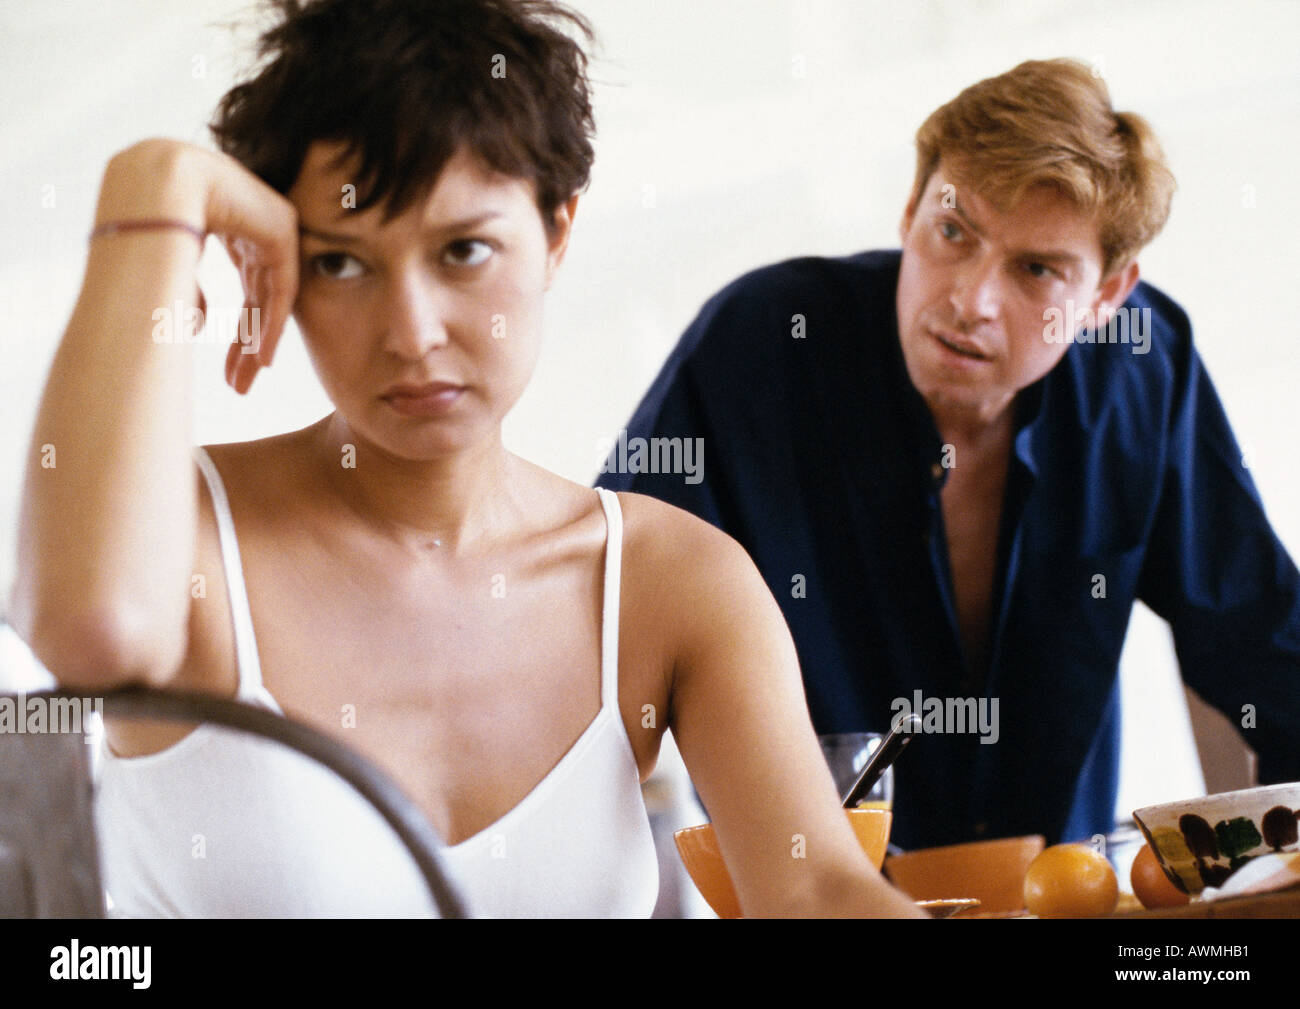 Woman sitting, elbow on back of chair, hand against head, man leaning toward her in background, front view - Stock Image